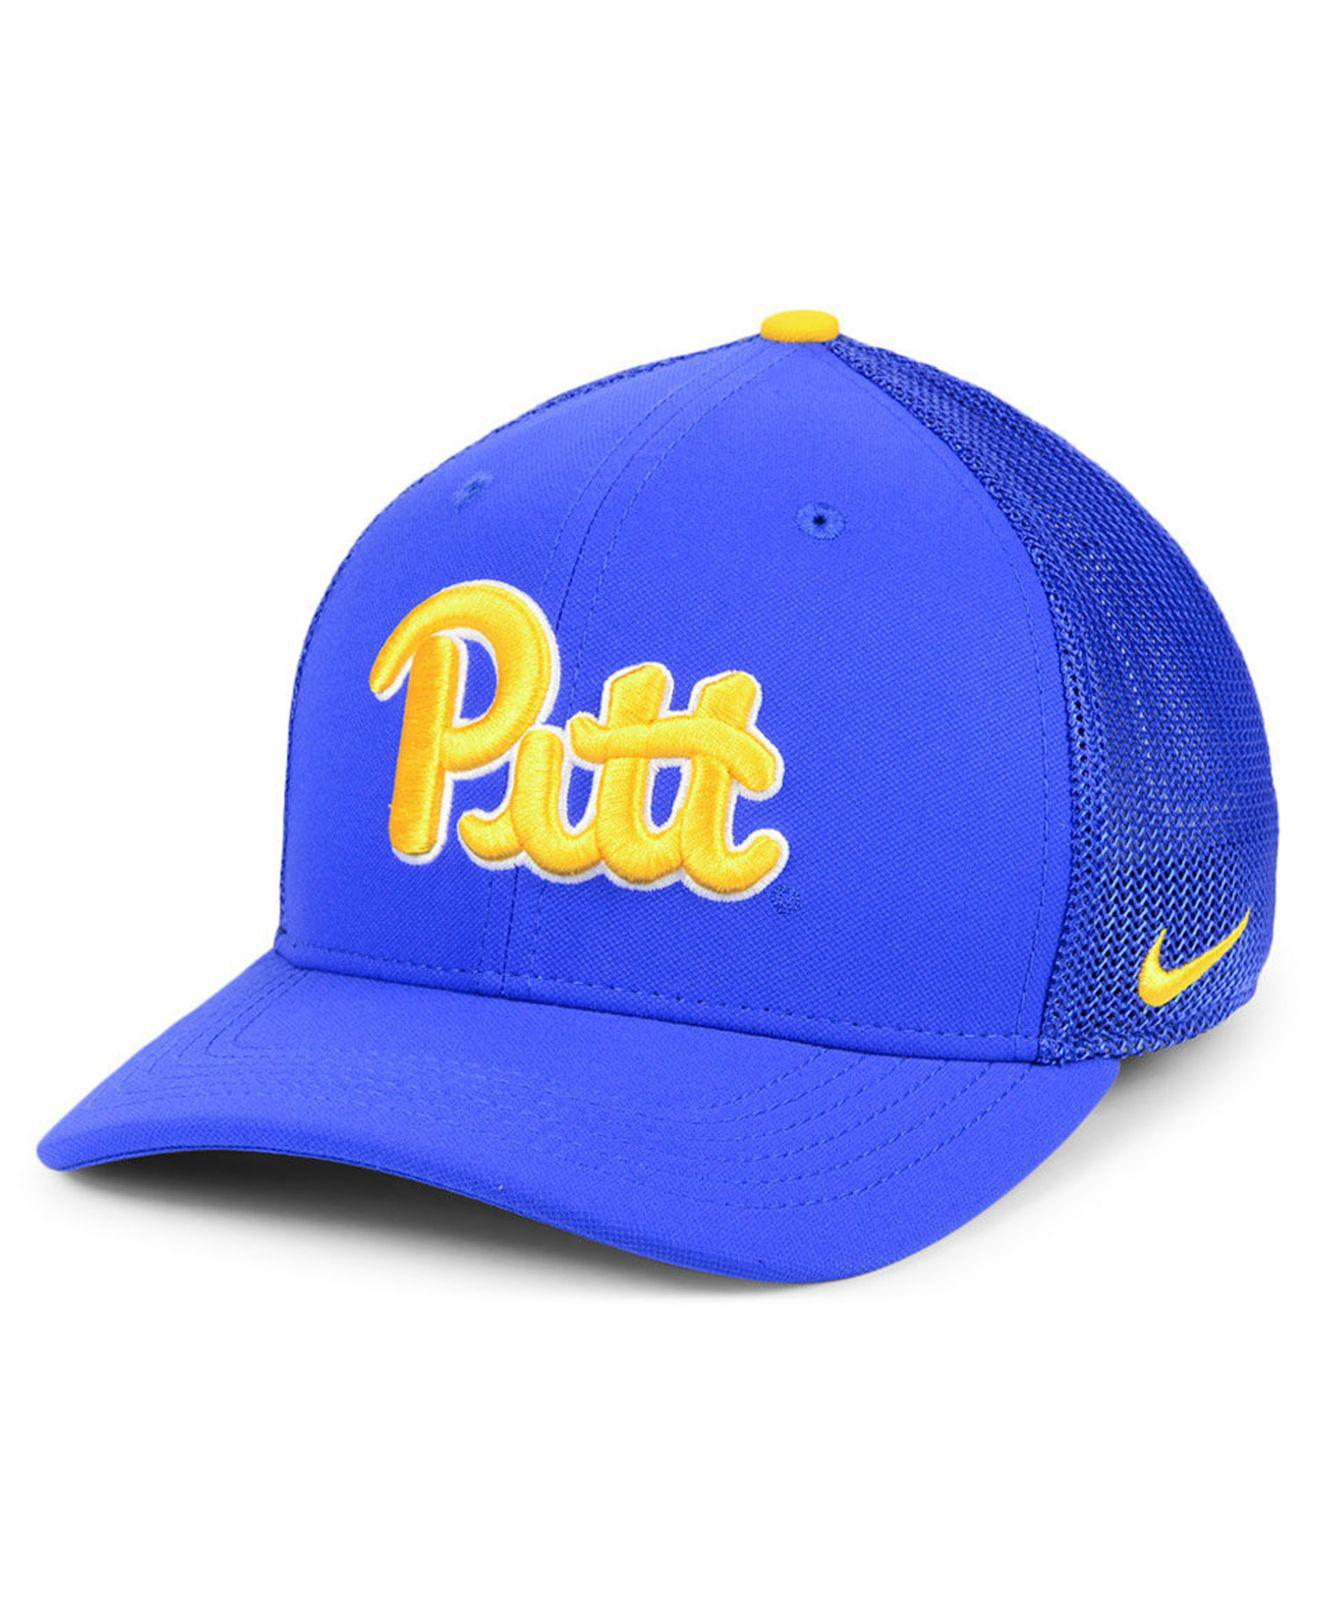 reputable site 1013c 56e9c Lyst - Nike Pittsburgh Panthers Col Aro Swooshflex Cap in Blue for Men